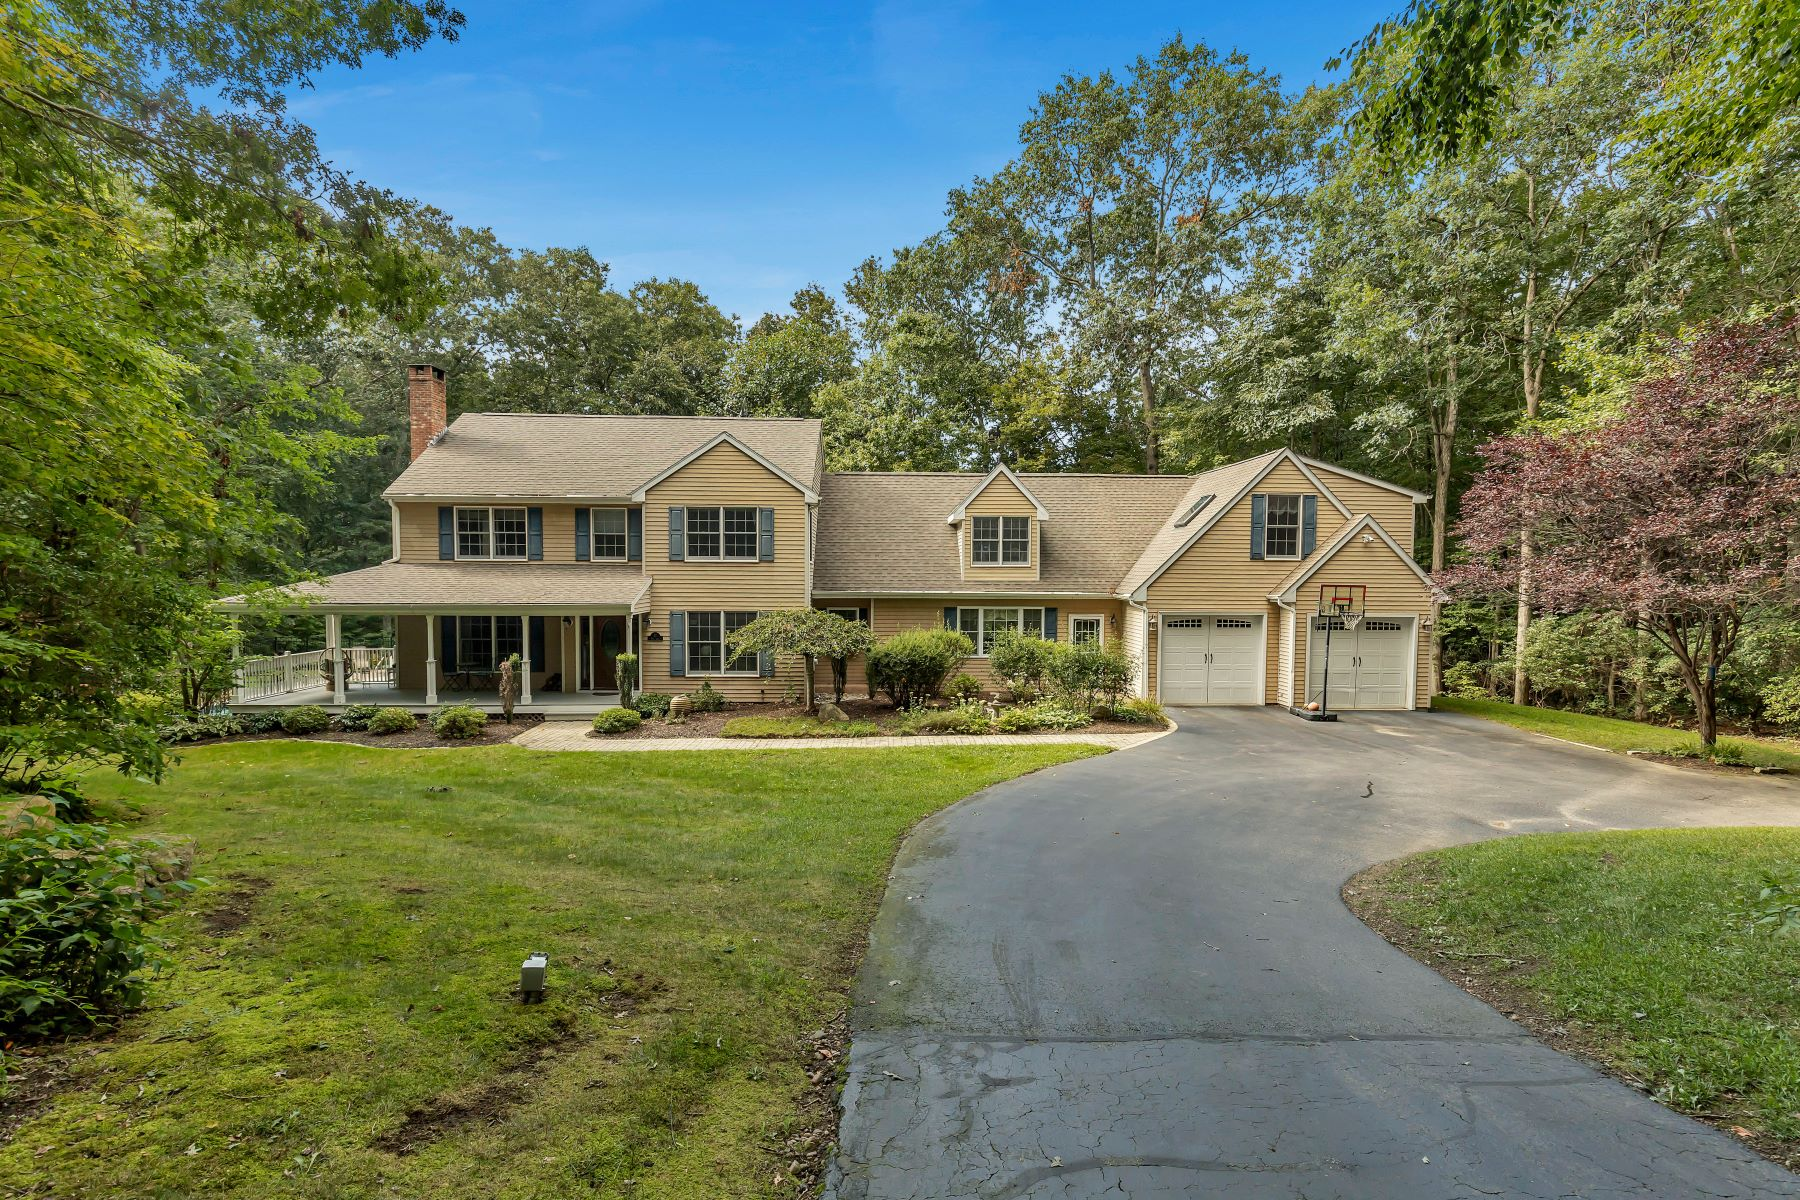 Single Family Homes for Sale at 17 Rose Lane East Lyme, Connecticut 06333 United States